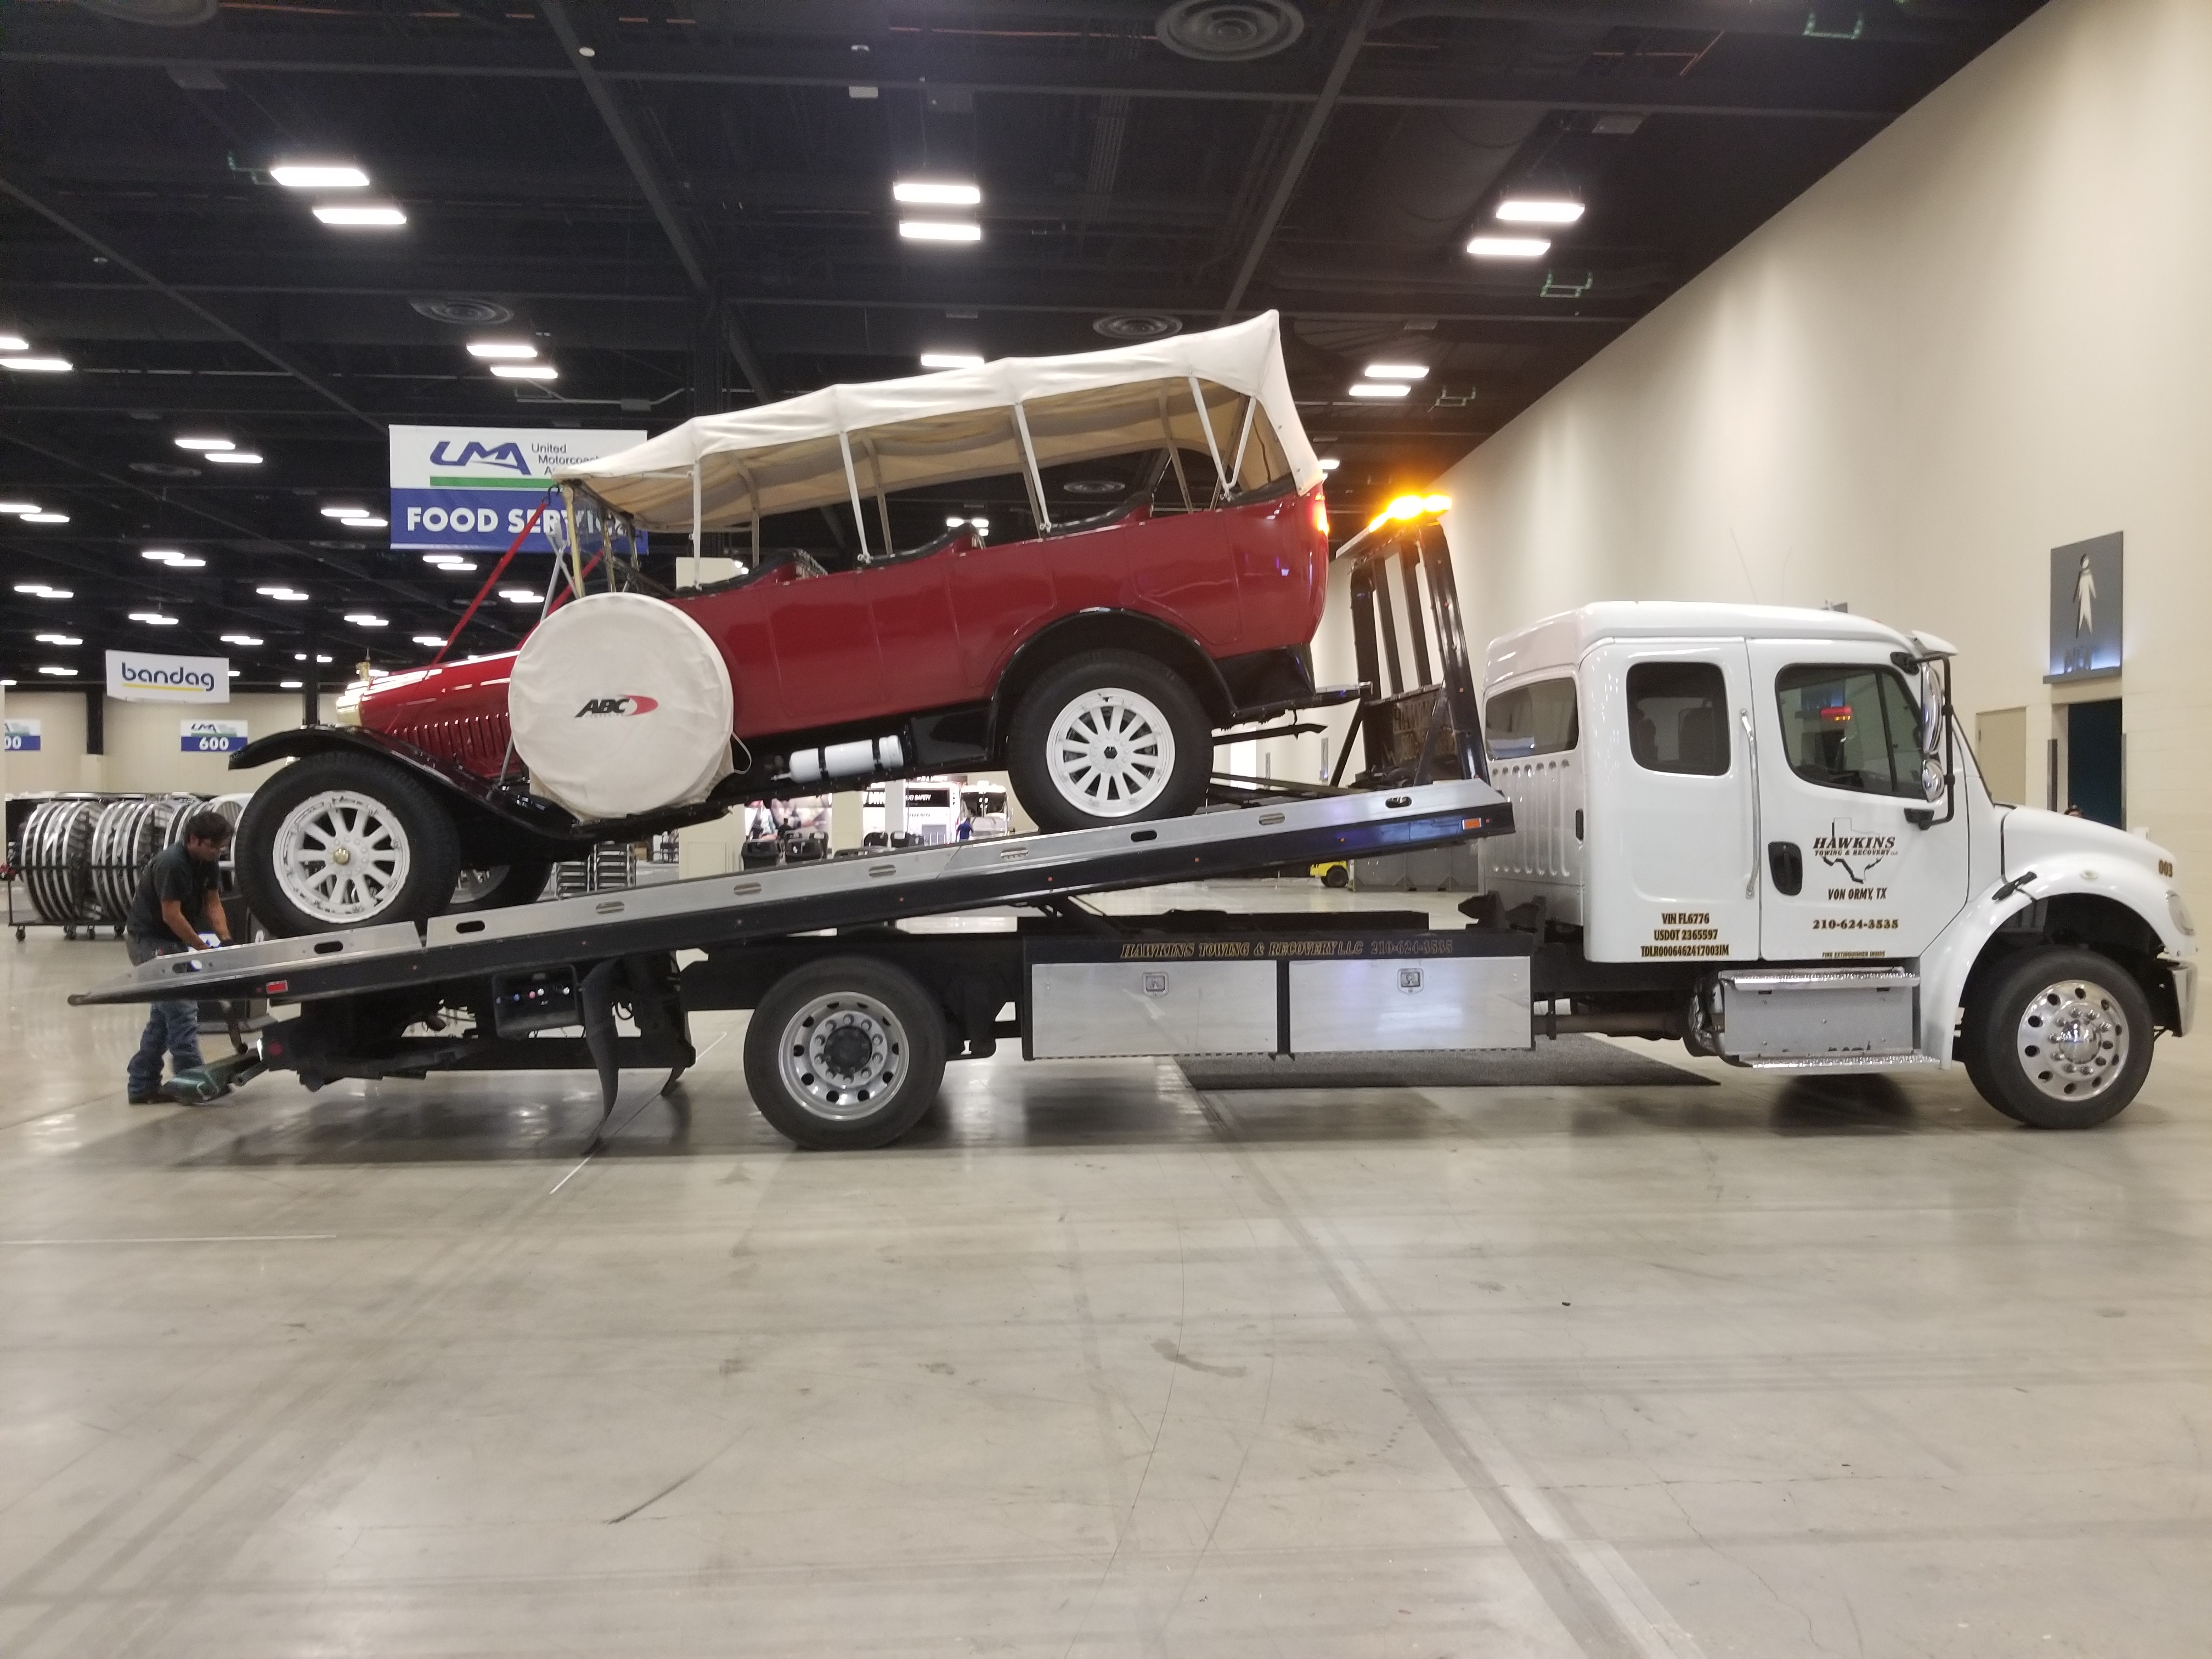 Hawkins Towing & Recovery image 4